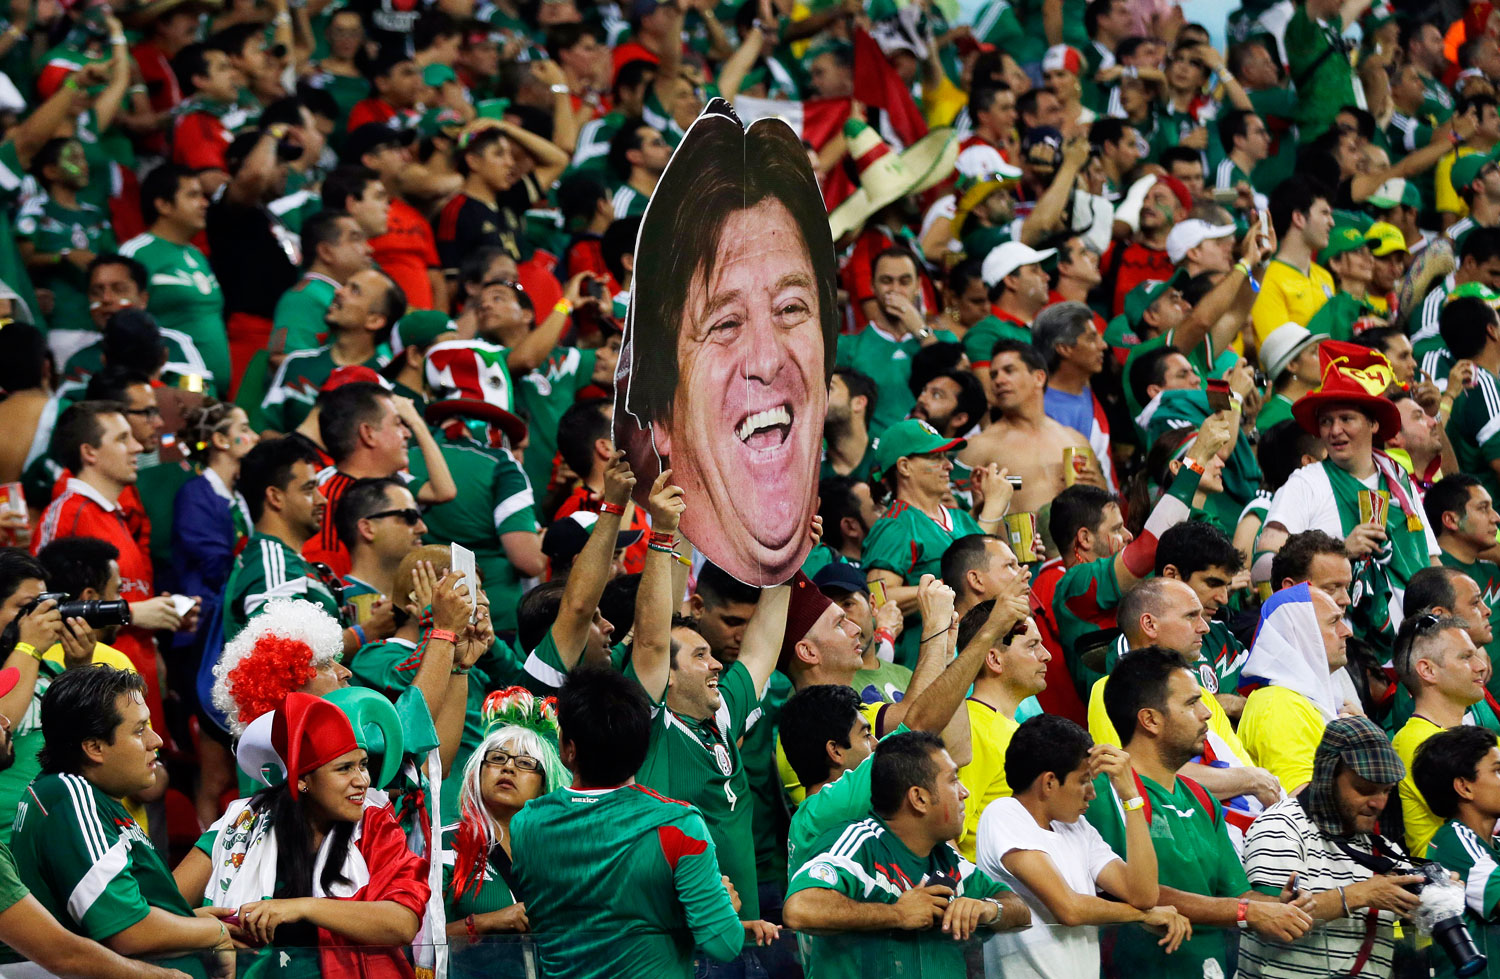 Mexico's fans celebrate holding a mask of Mexico's head coach Miguel Herrera after  the match between Croatia and Mexico at the Arena Pernambuco in Recife, Brazil on June 23, 2014.